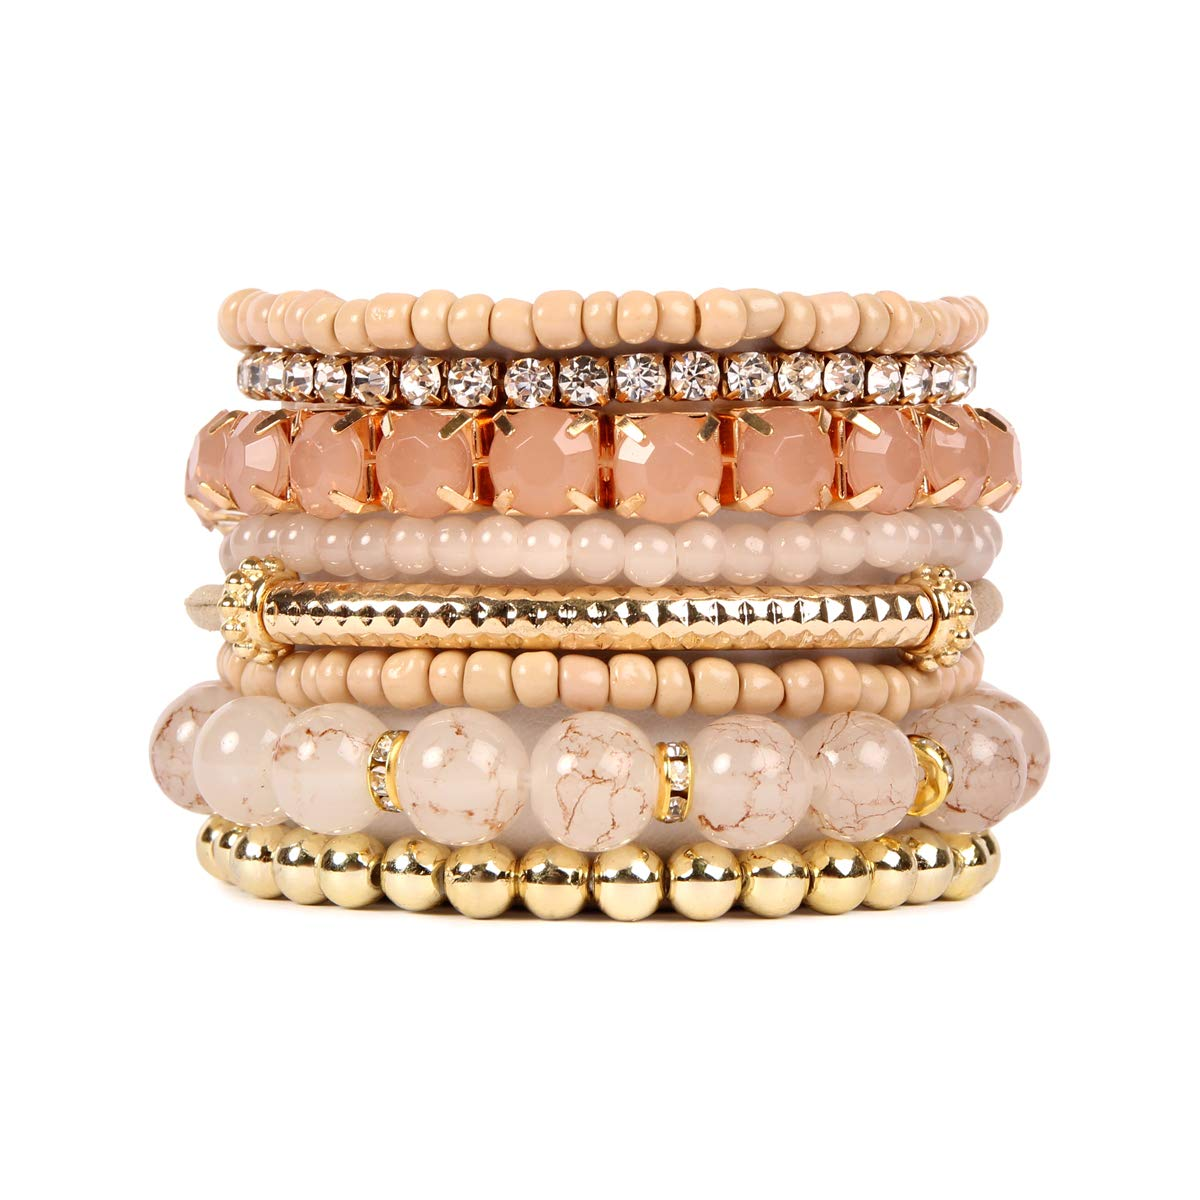 RIAH FASHION Multi Color Stretch Beaded Stackable Bracelets - Layering Bead Strand Statement Bangles HDB1286GR